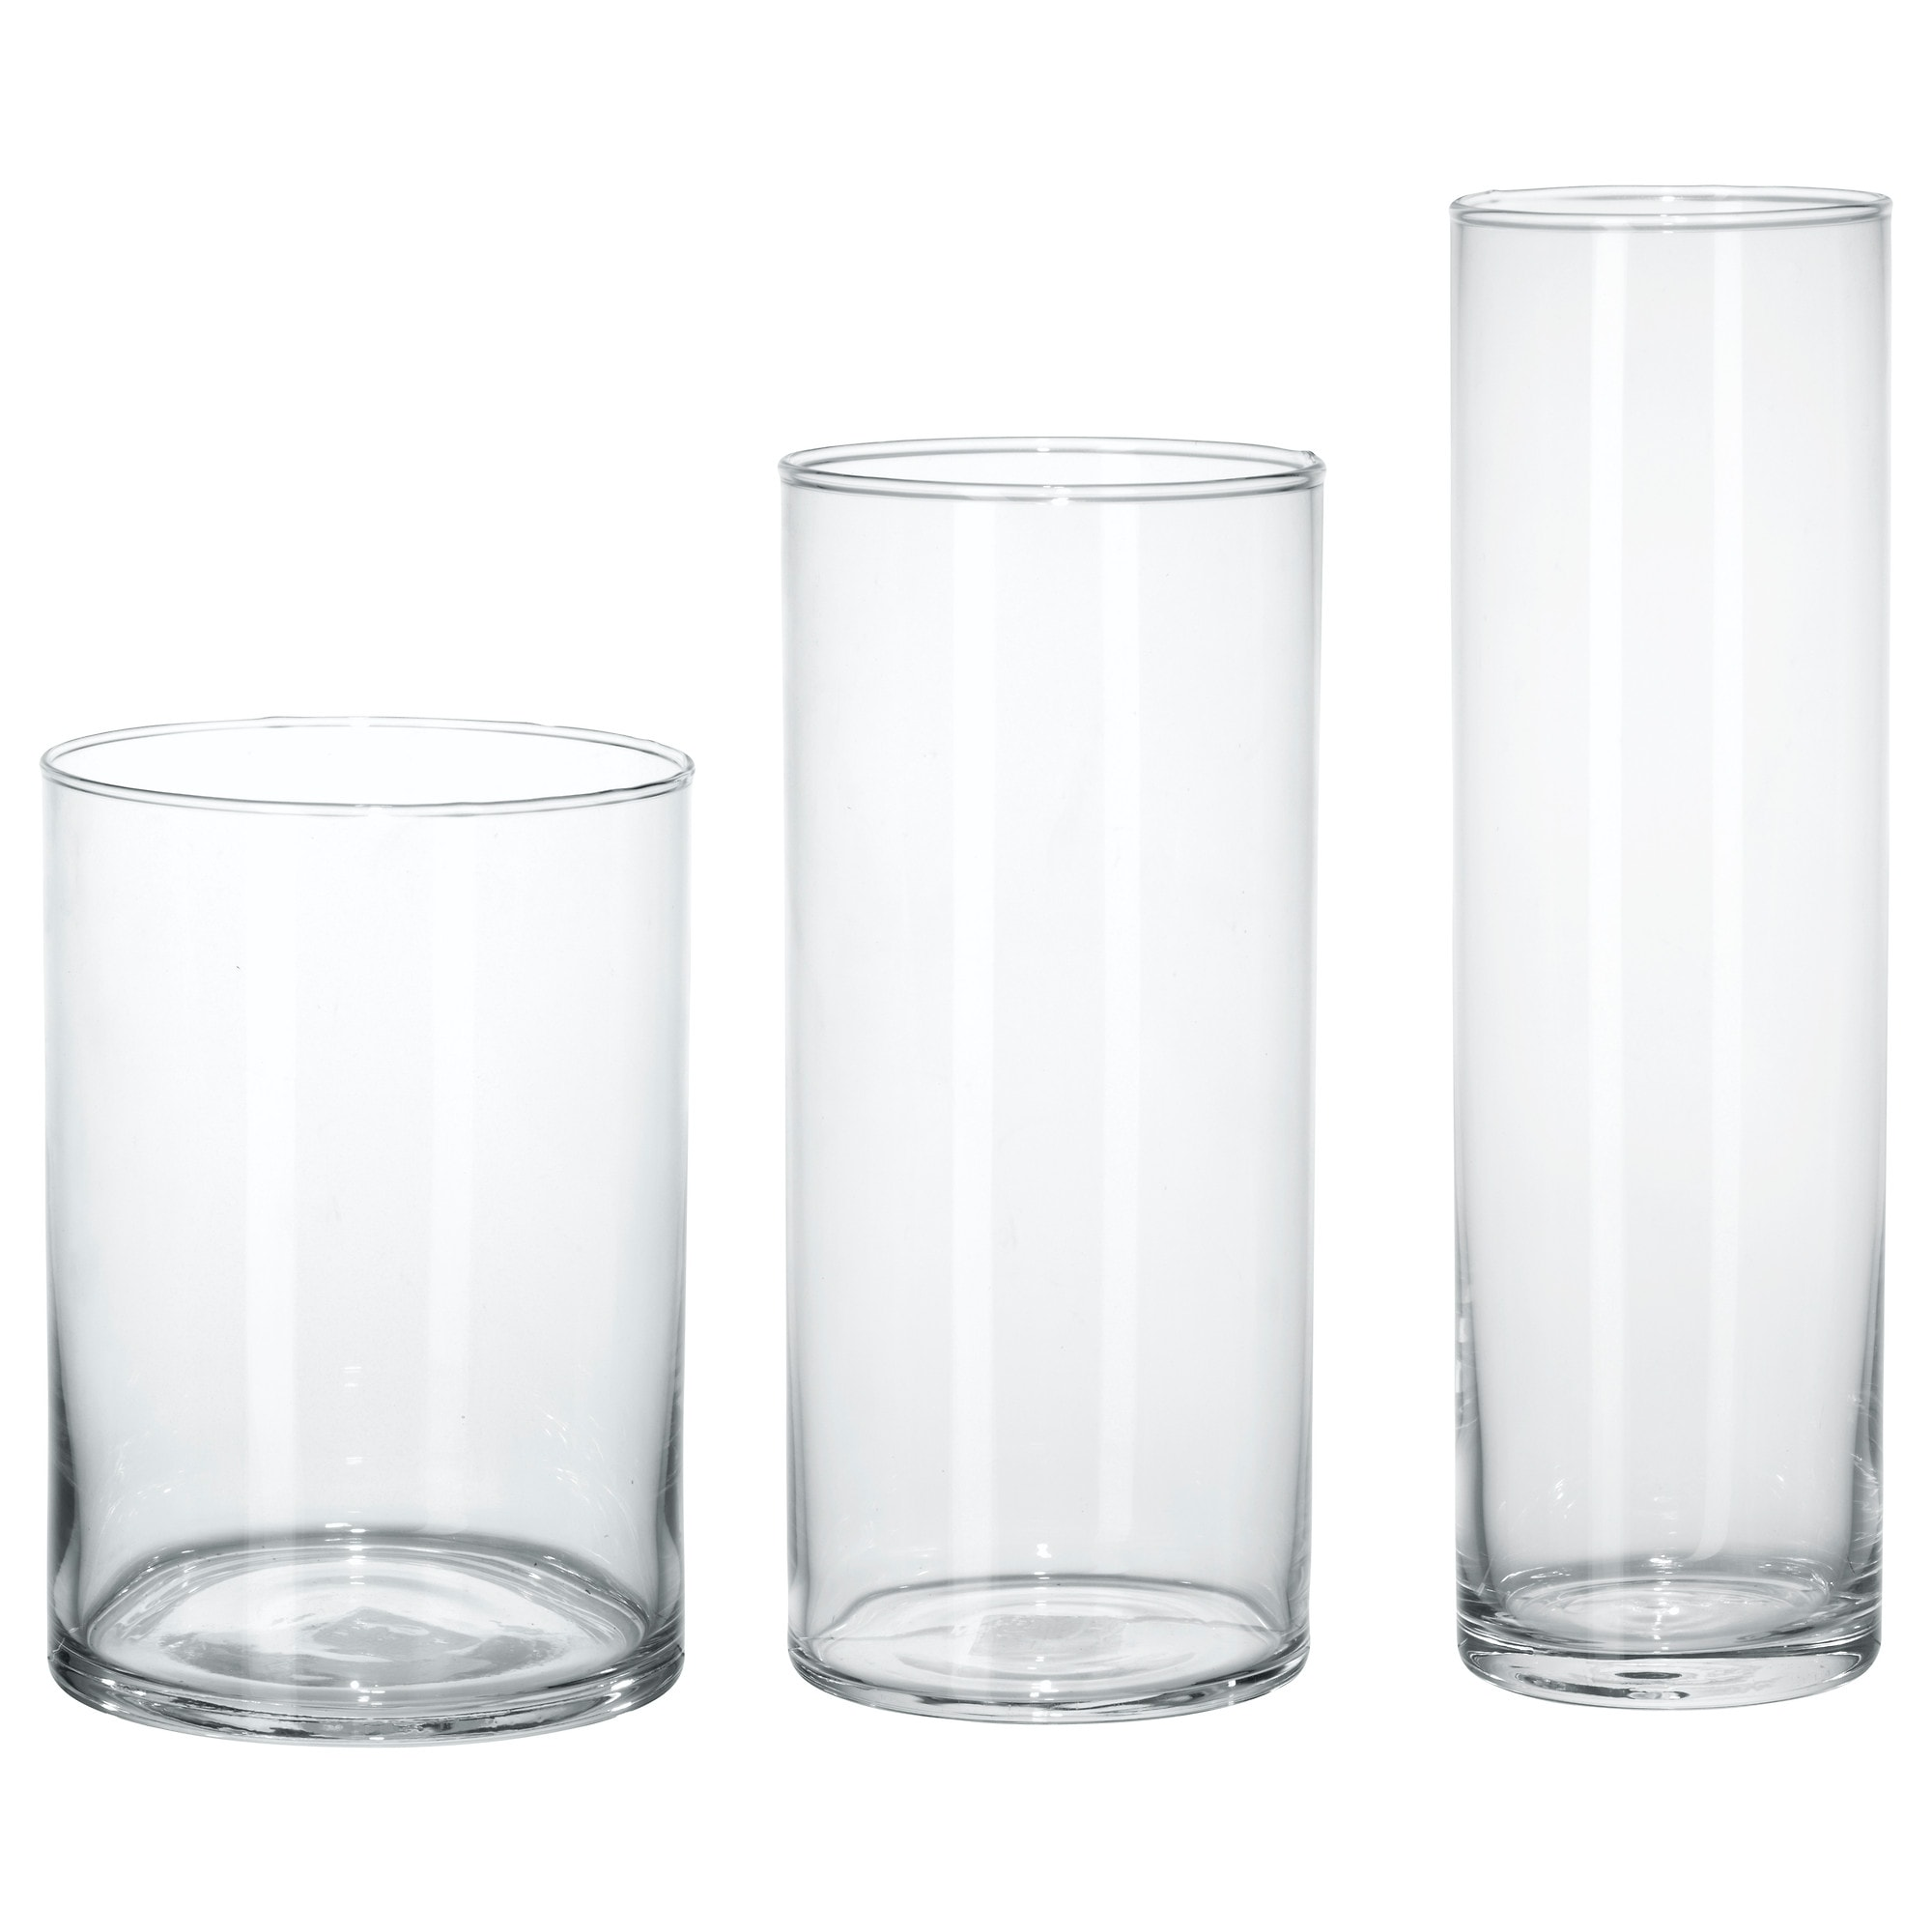 Glass vases decorative bowls ikea cylinder vase set of 3 reviewsmspy